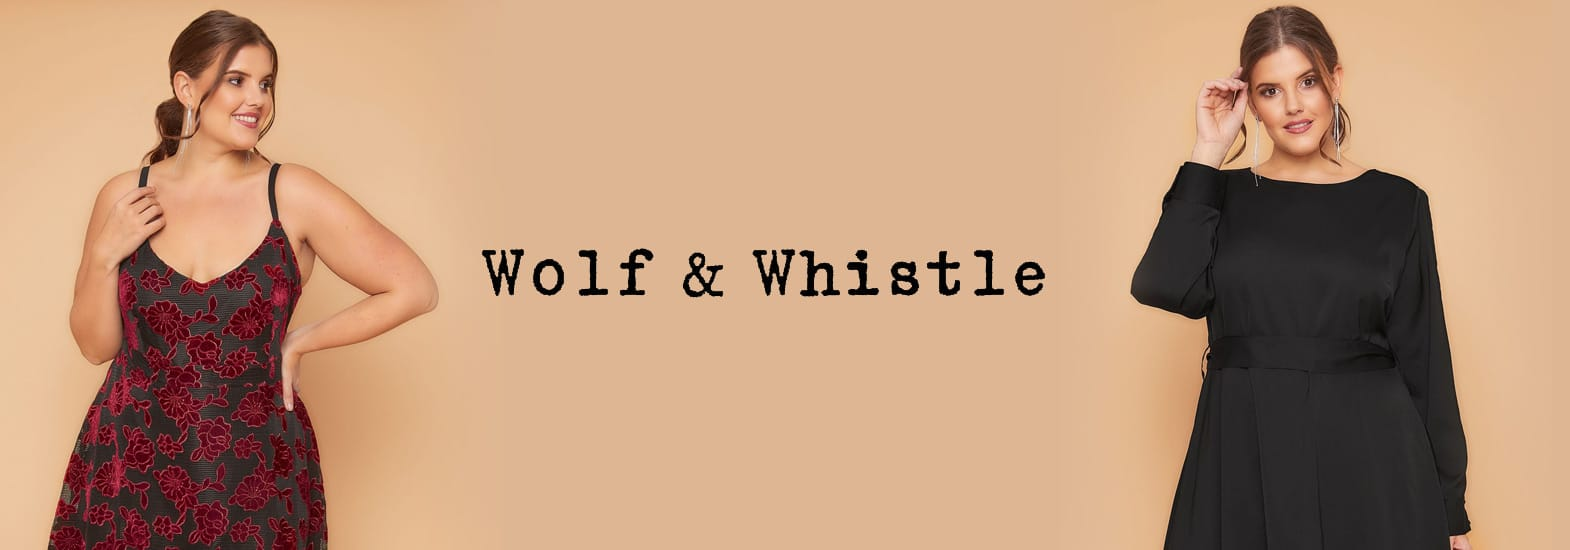 Shop Wolf & Whistle >